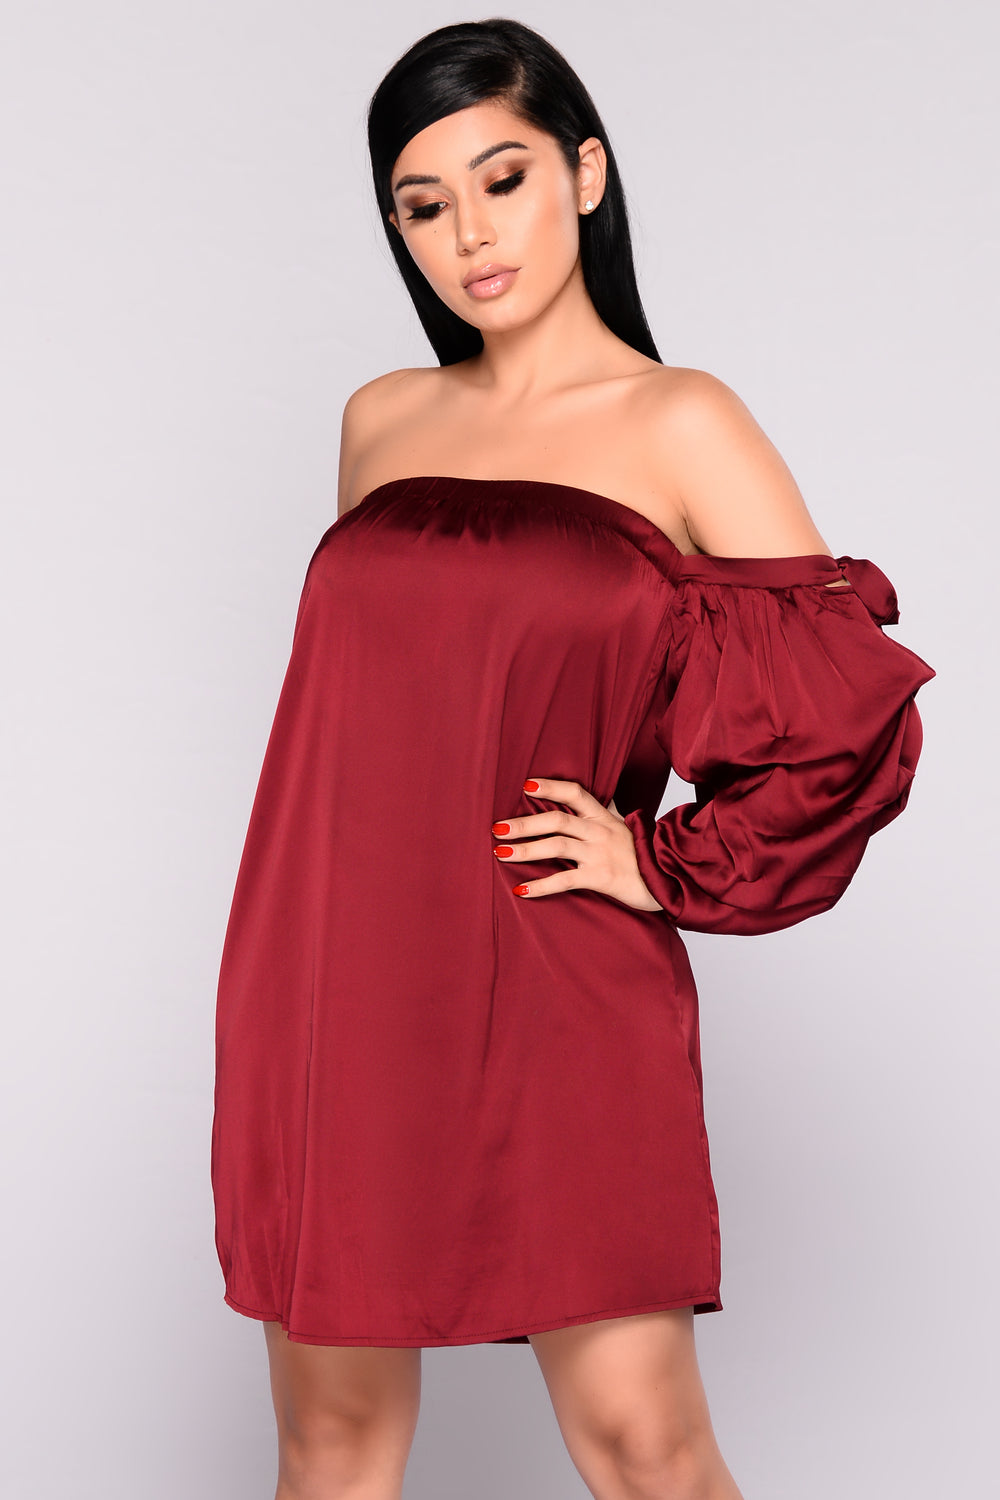 Go With The Flowy Satin Dress - Wine